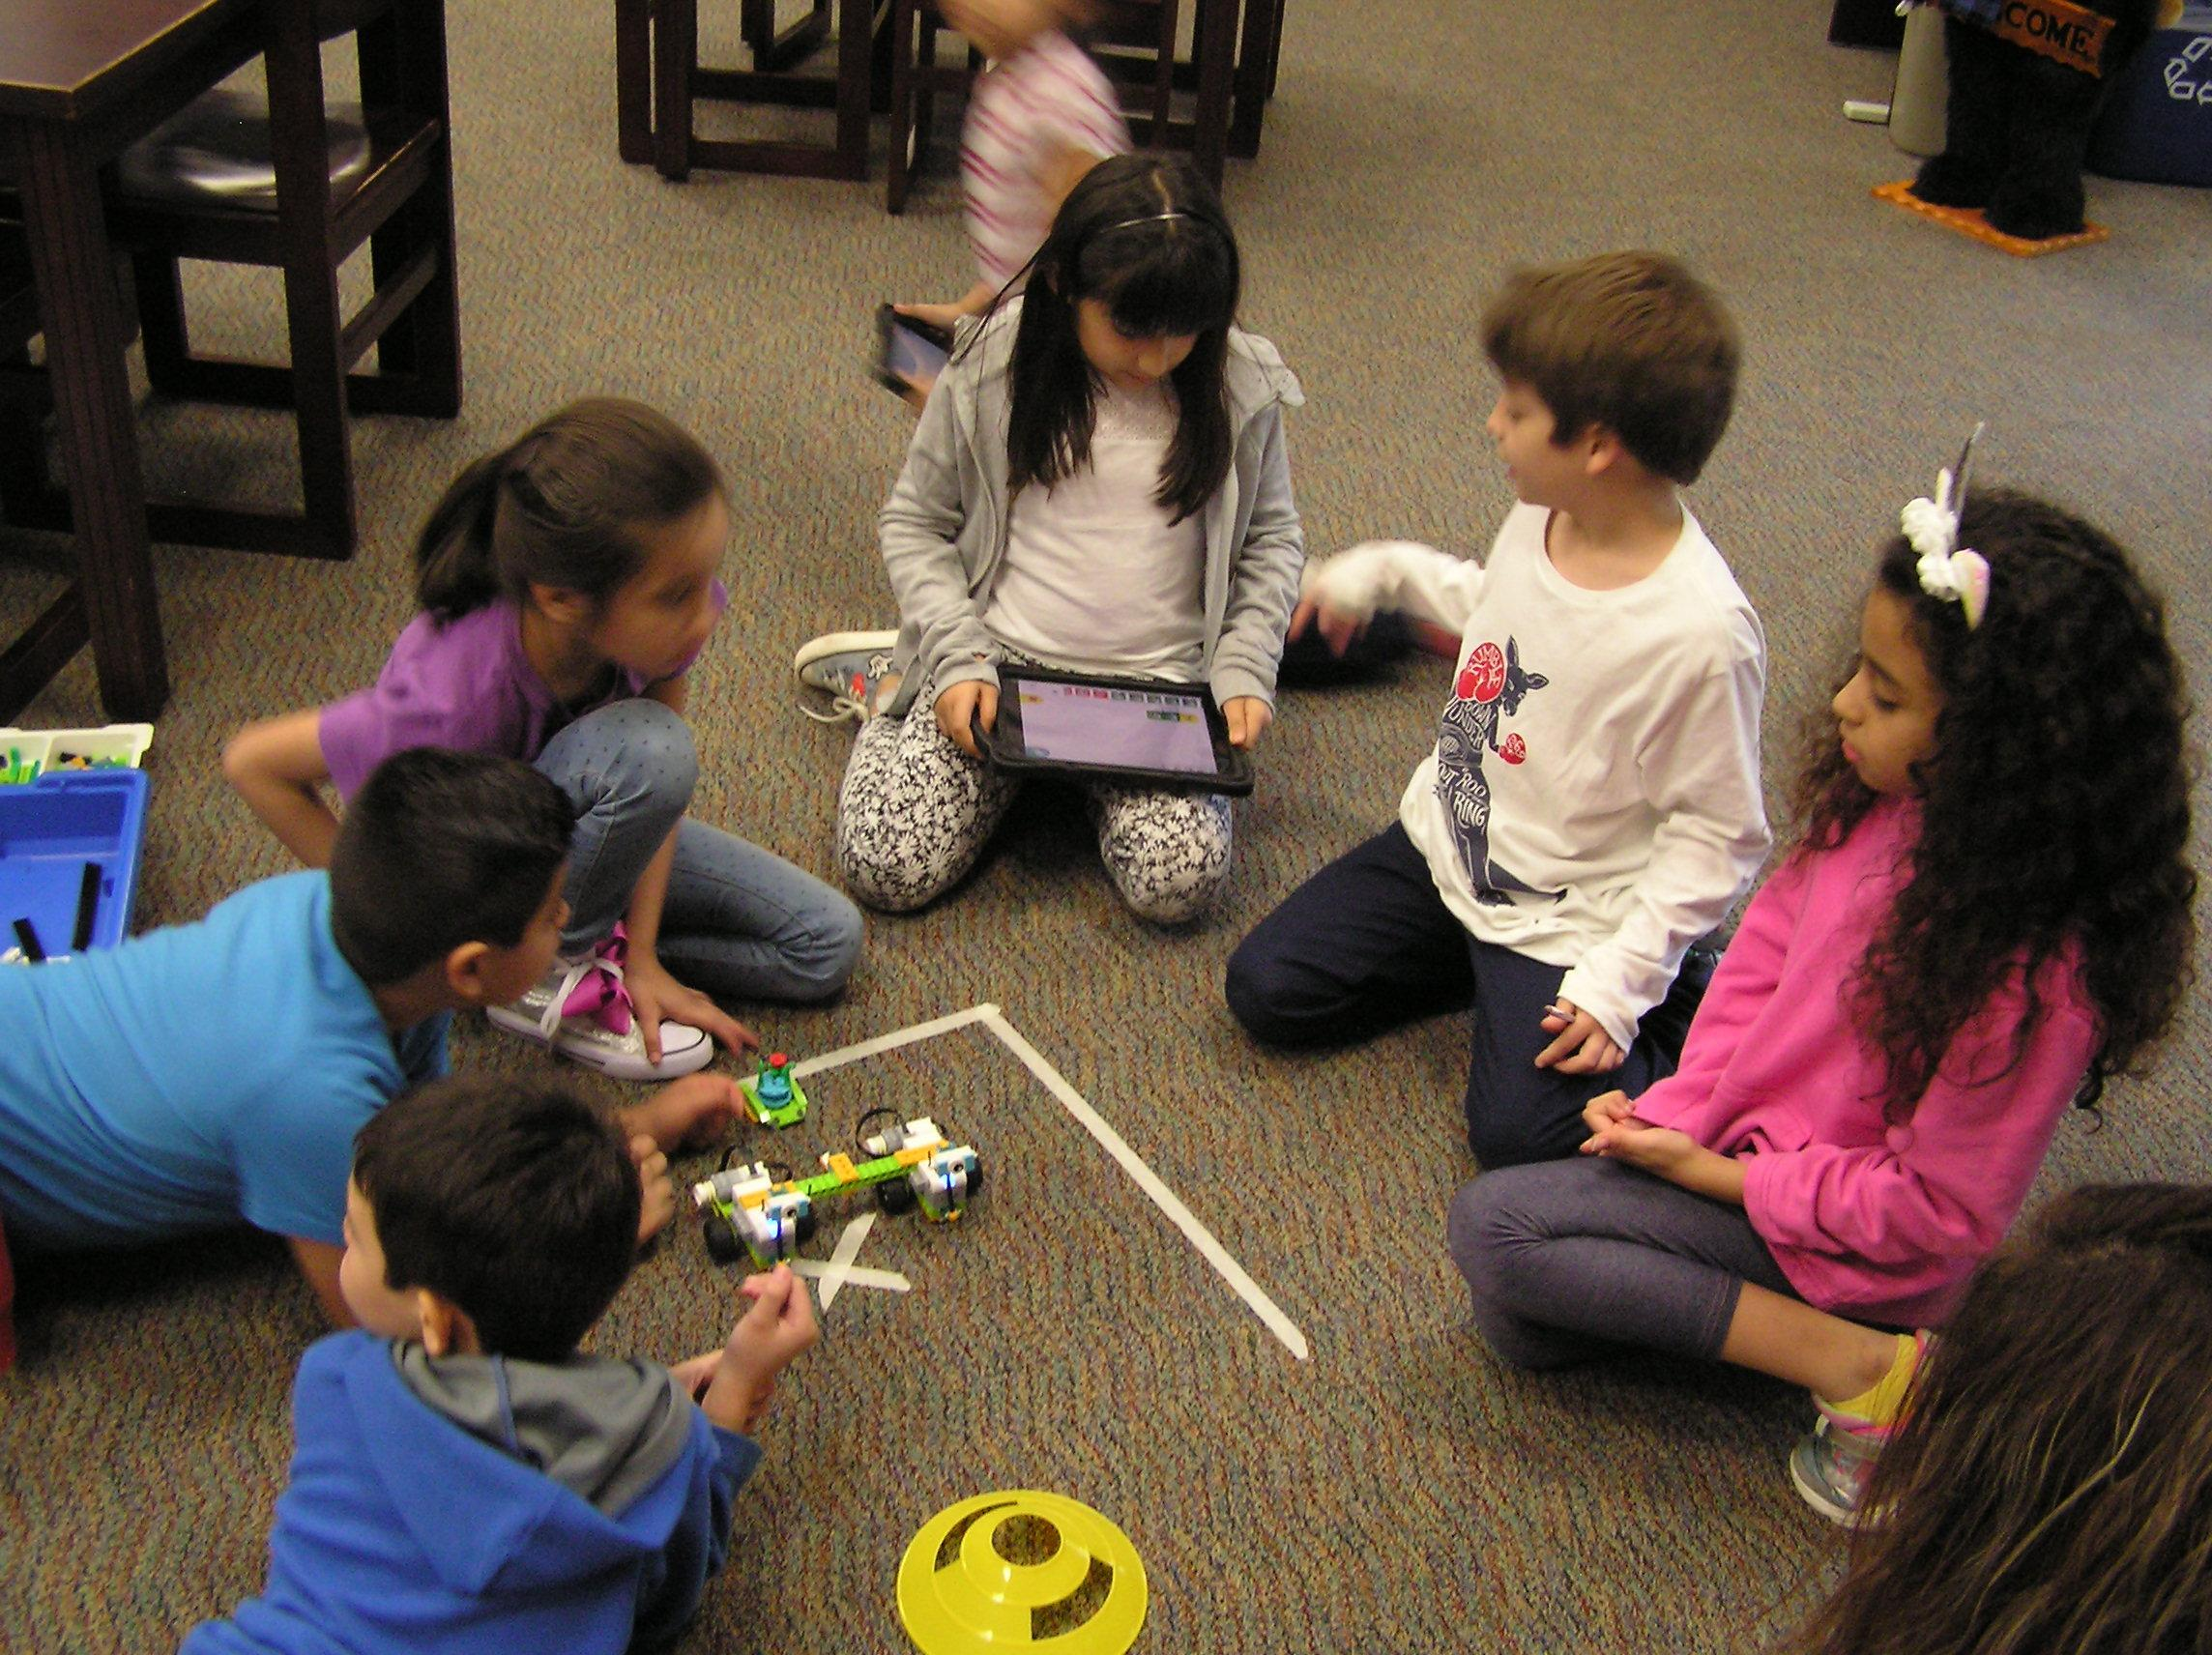 Students learning to construct a robot which they can code.